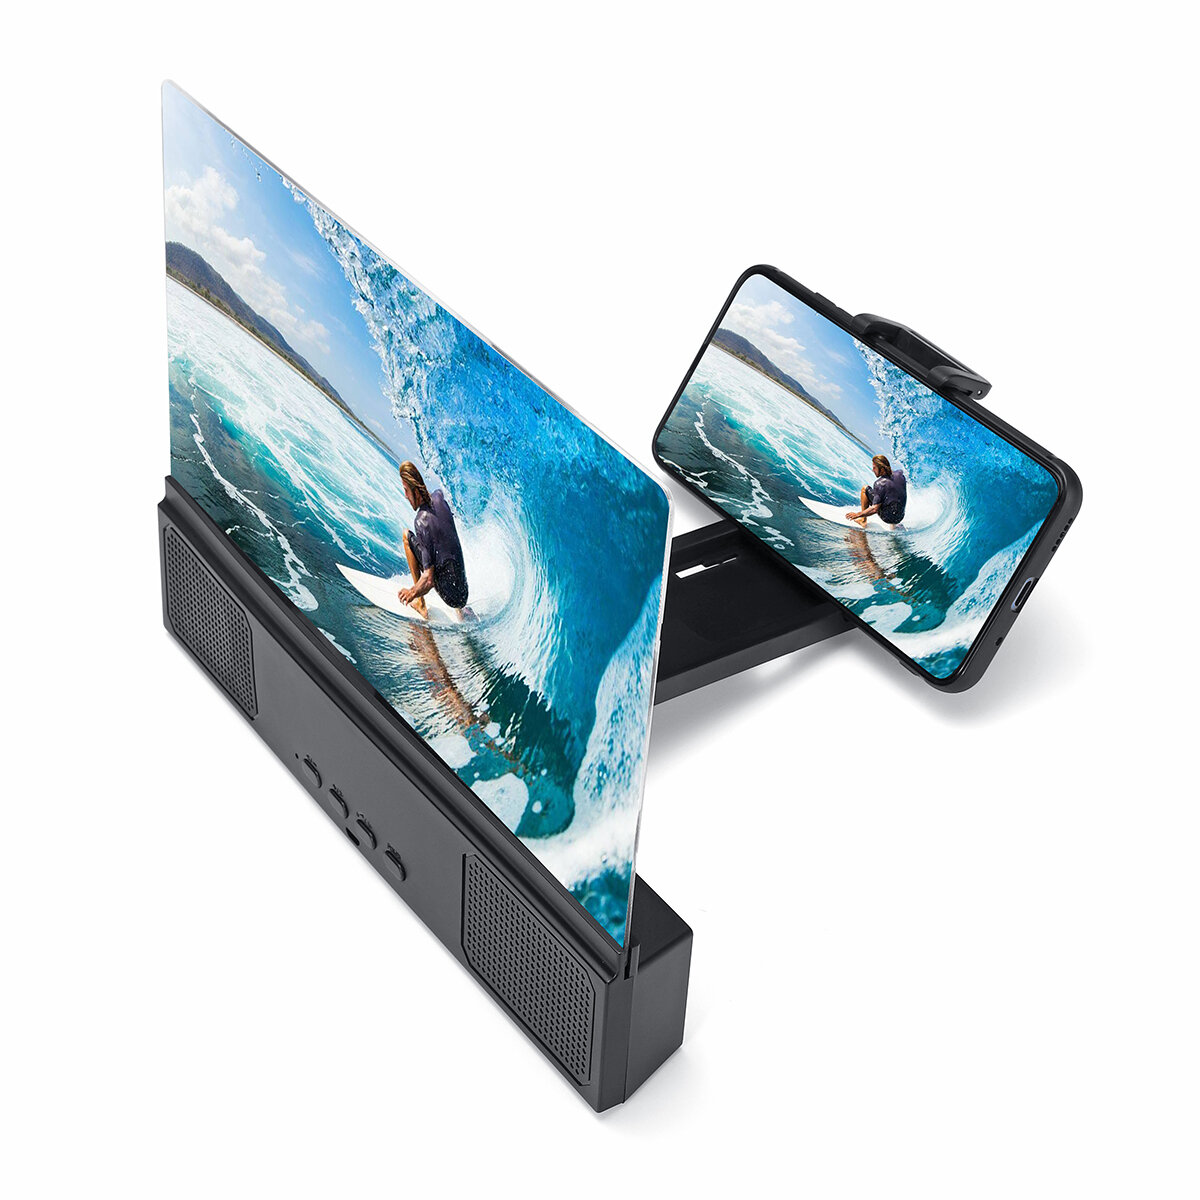 "12"" 3D Phone Screen Magnifier Movie Video Screen Amplifier With bluetooth Speaker For Smart Phone iPhone Samsung Huawei Xiaomi"